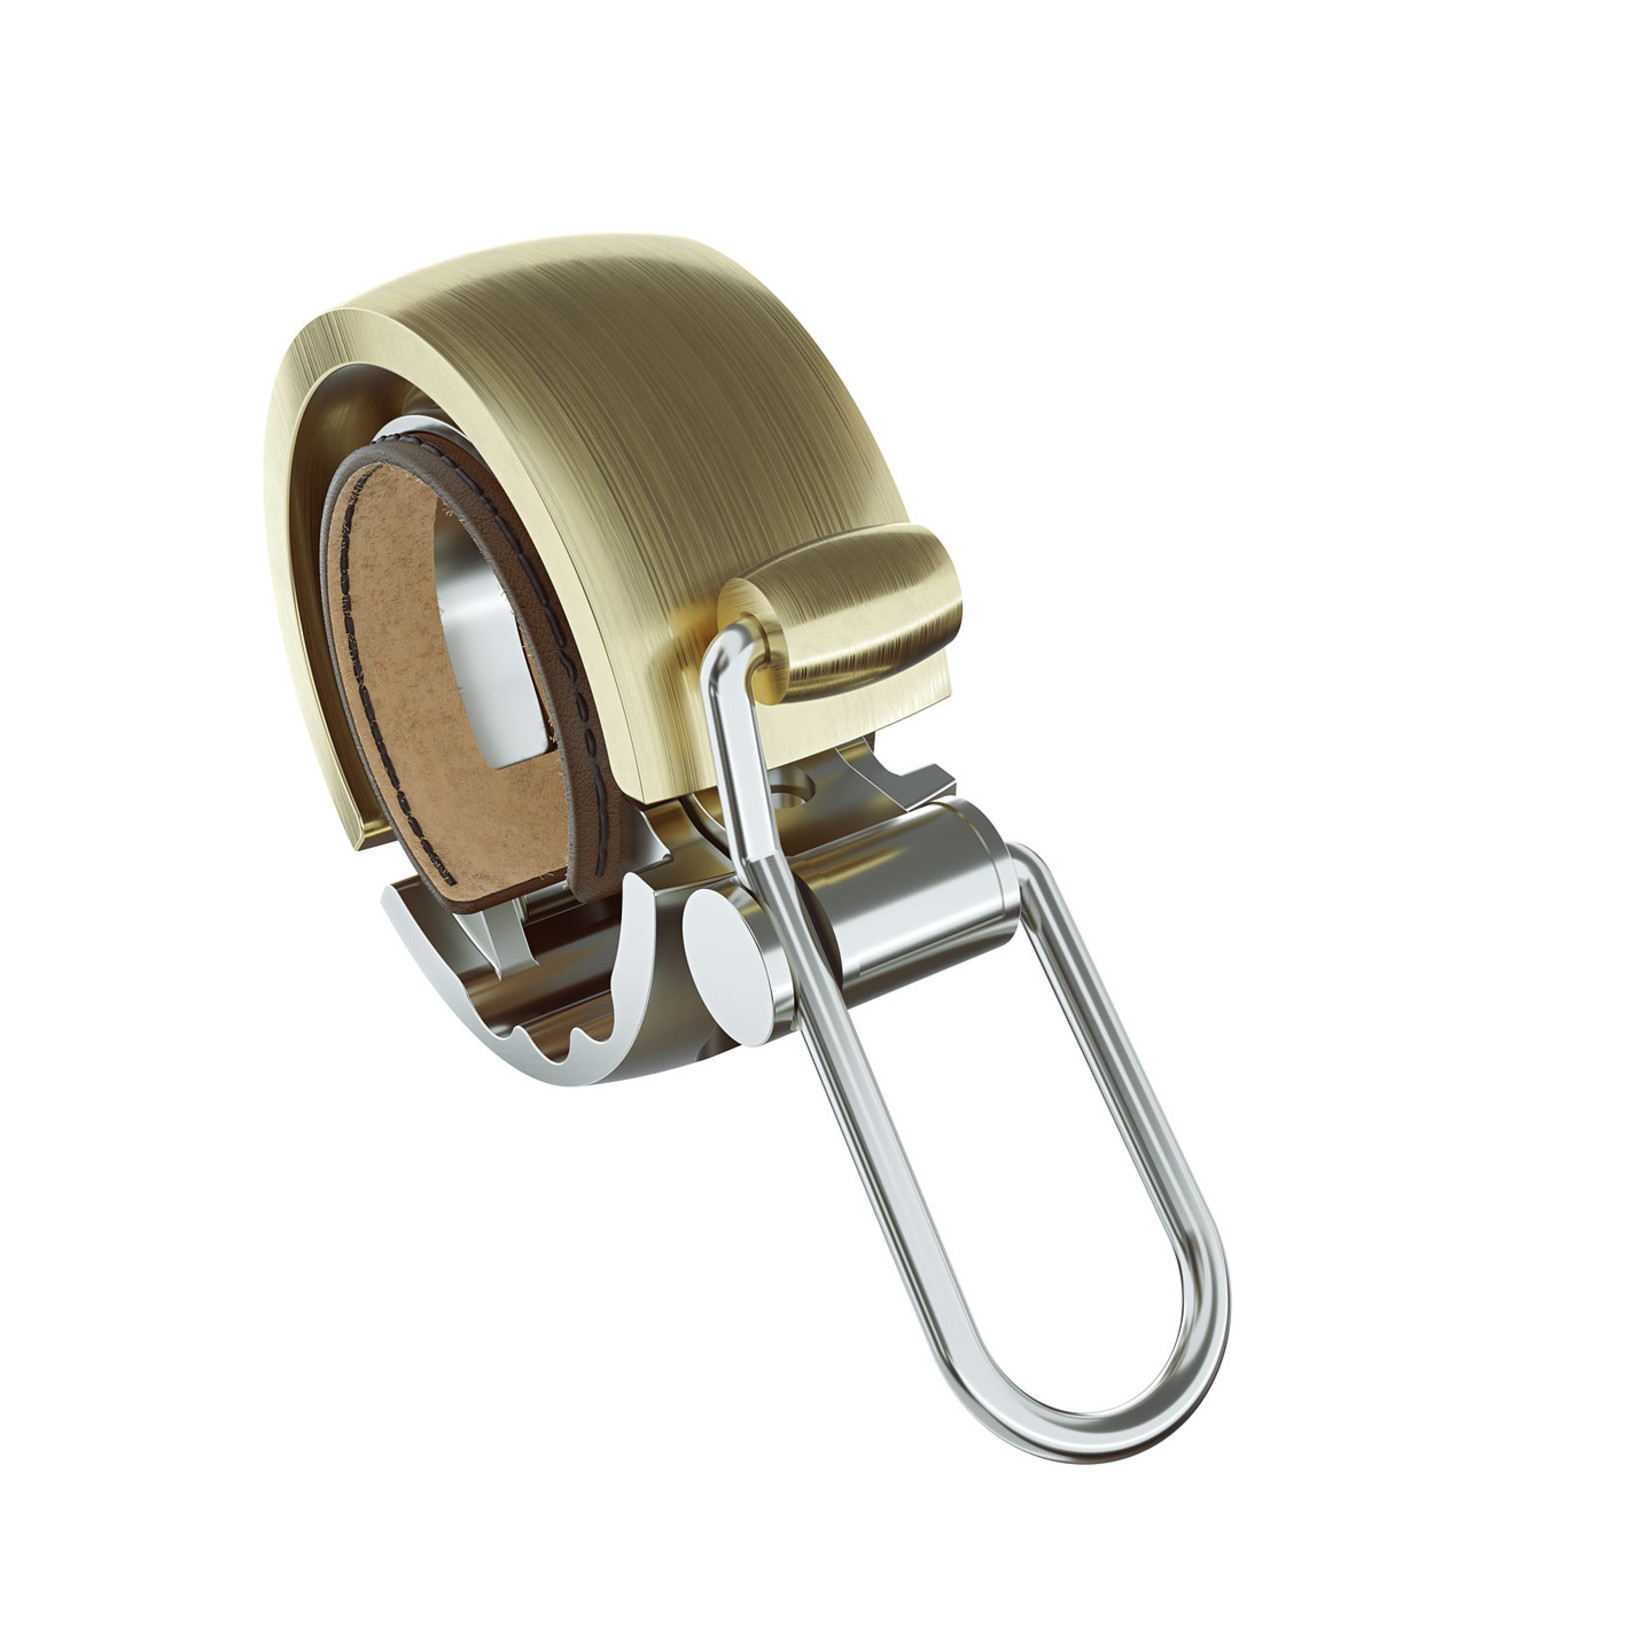 Knog Knog Bel Oi small deluxe